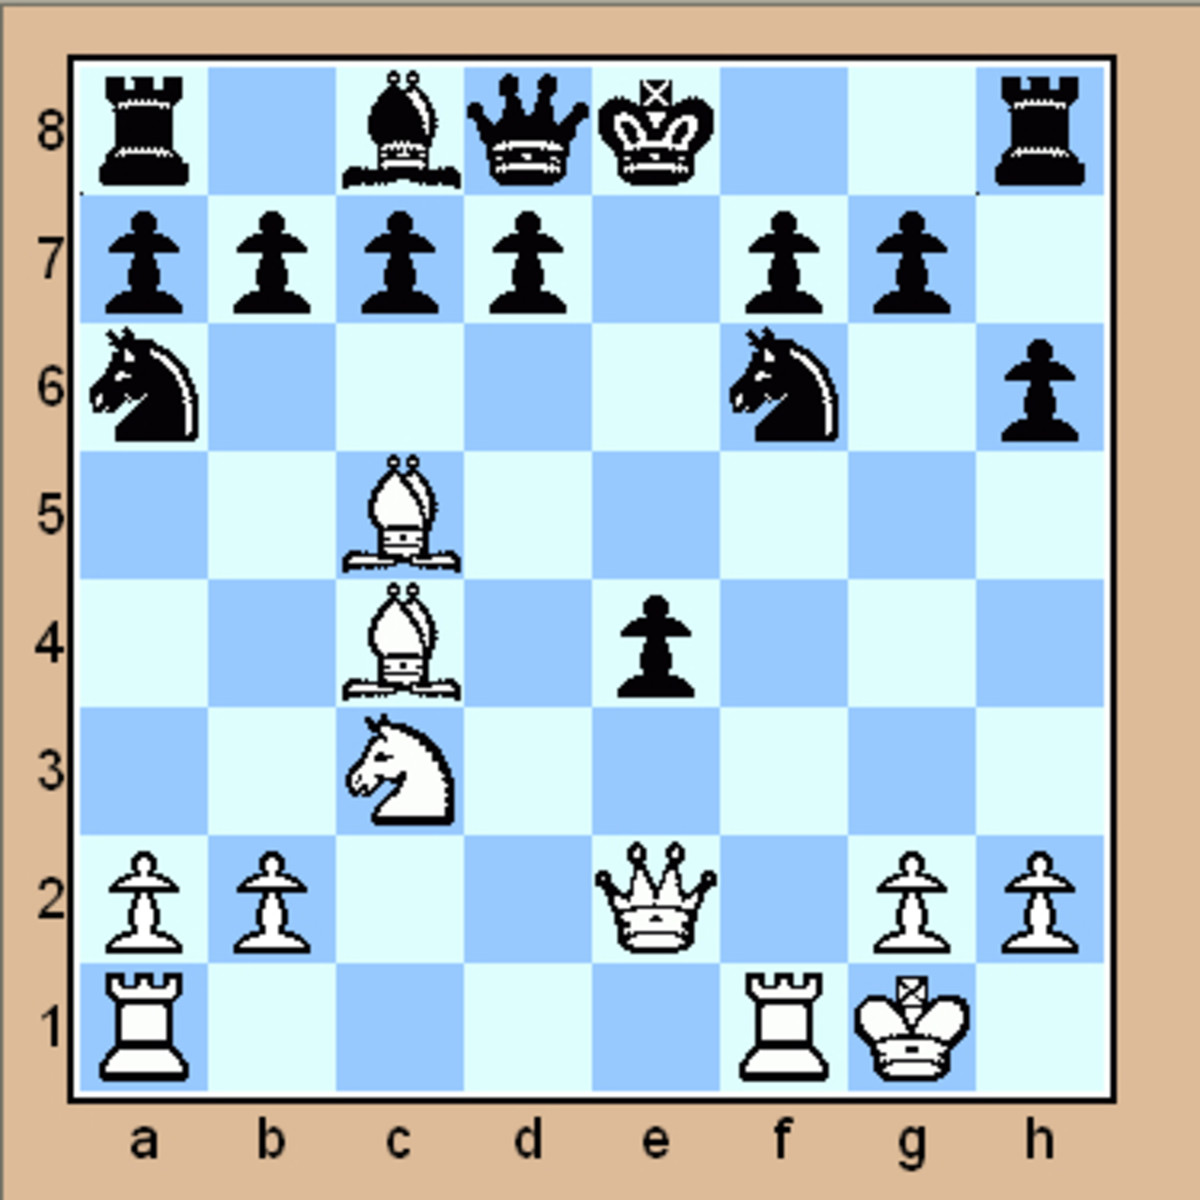 Mate in 2 chess puzzle (Click to enlarge)